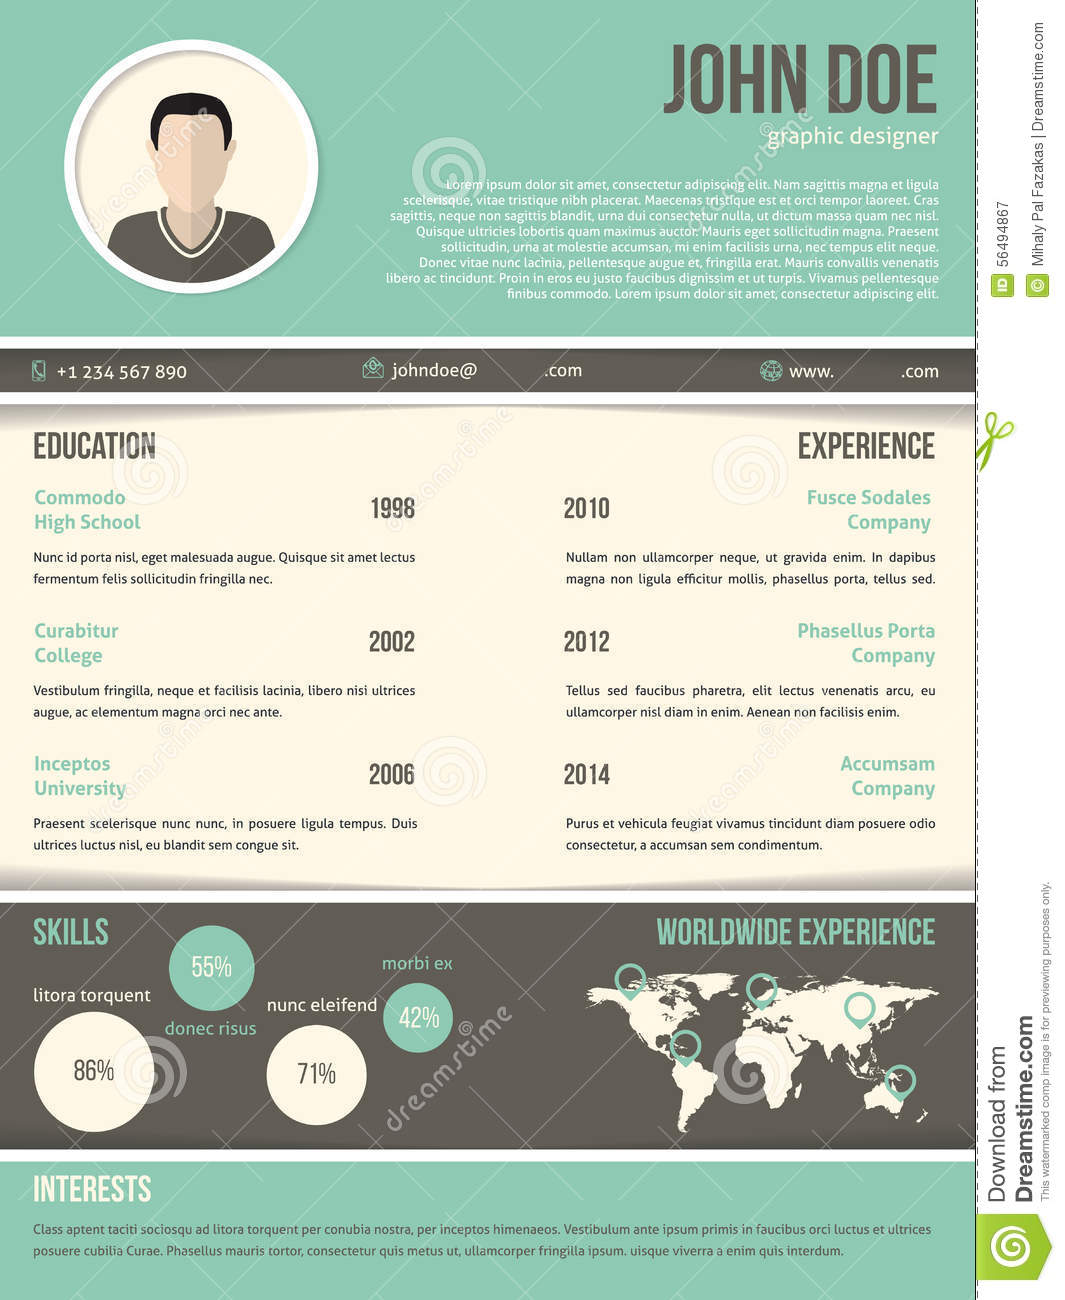 Cool Resume Cv Design With Dark And Light Contrast Stock